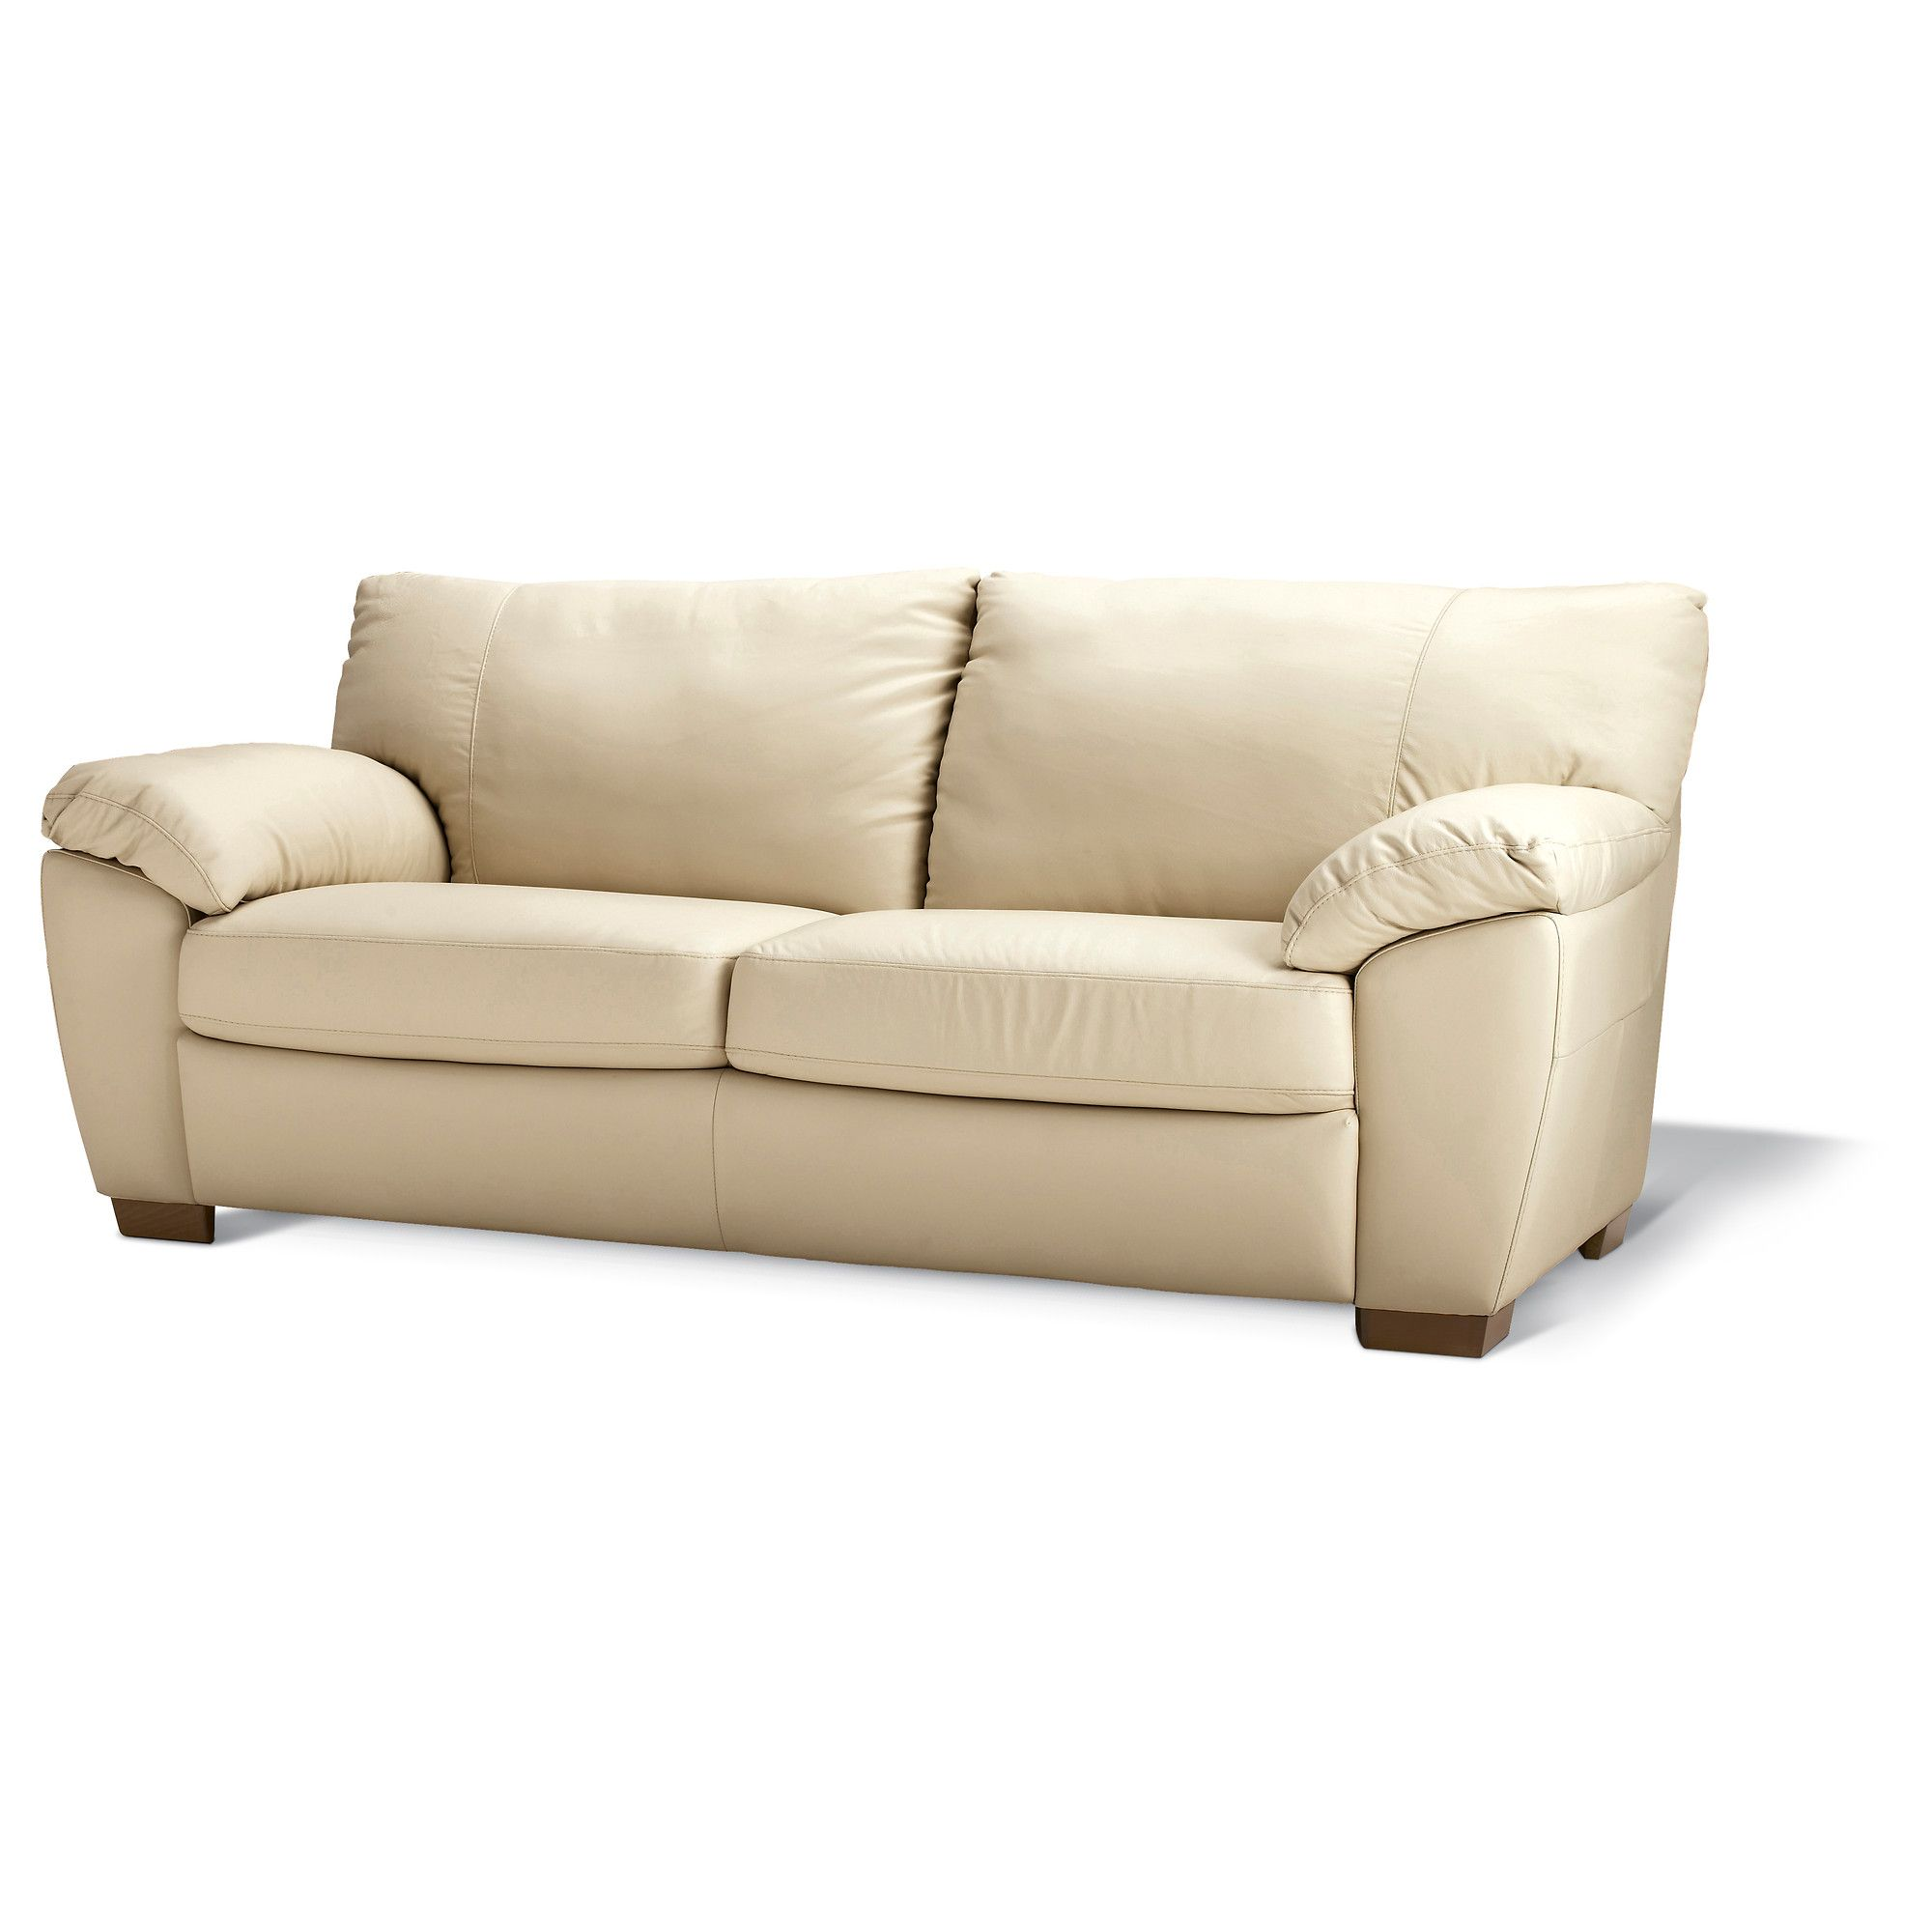 Ikea White Leather Couch Sofas: VRETA Sofa - Mjuk Ivory - IKEA